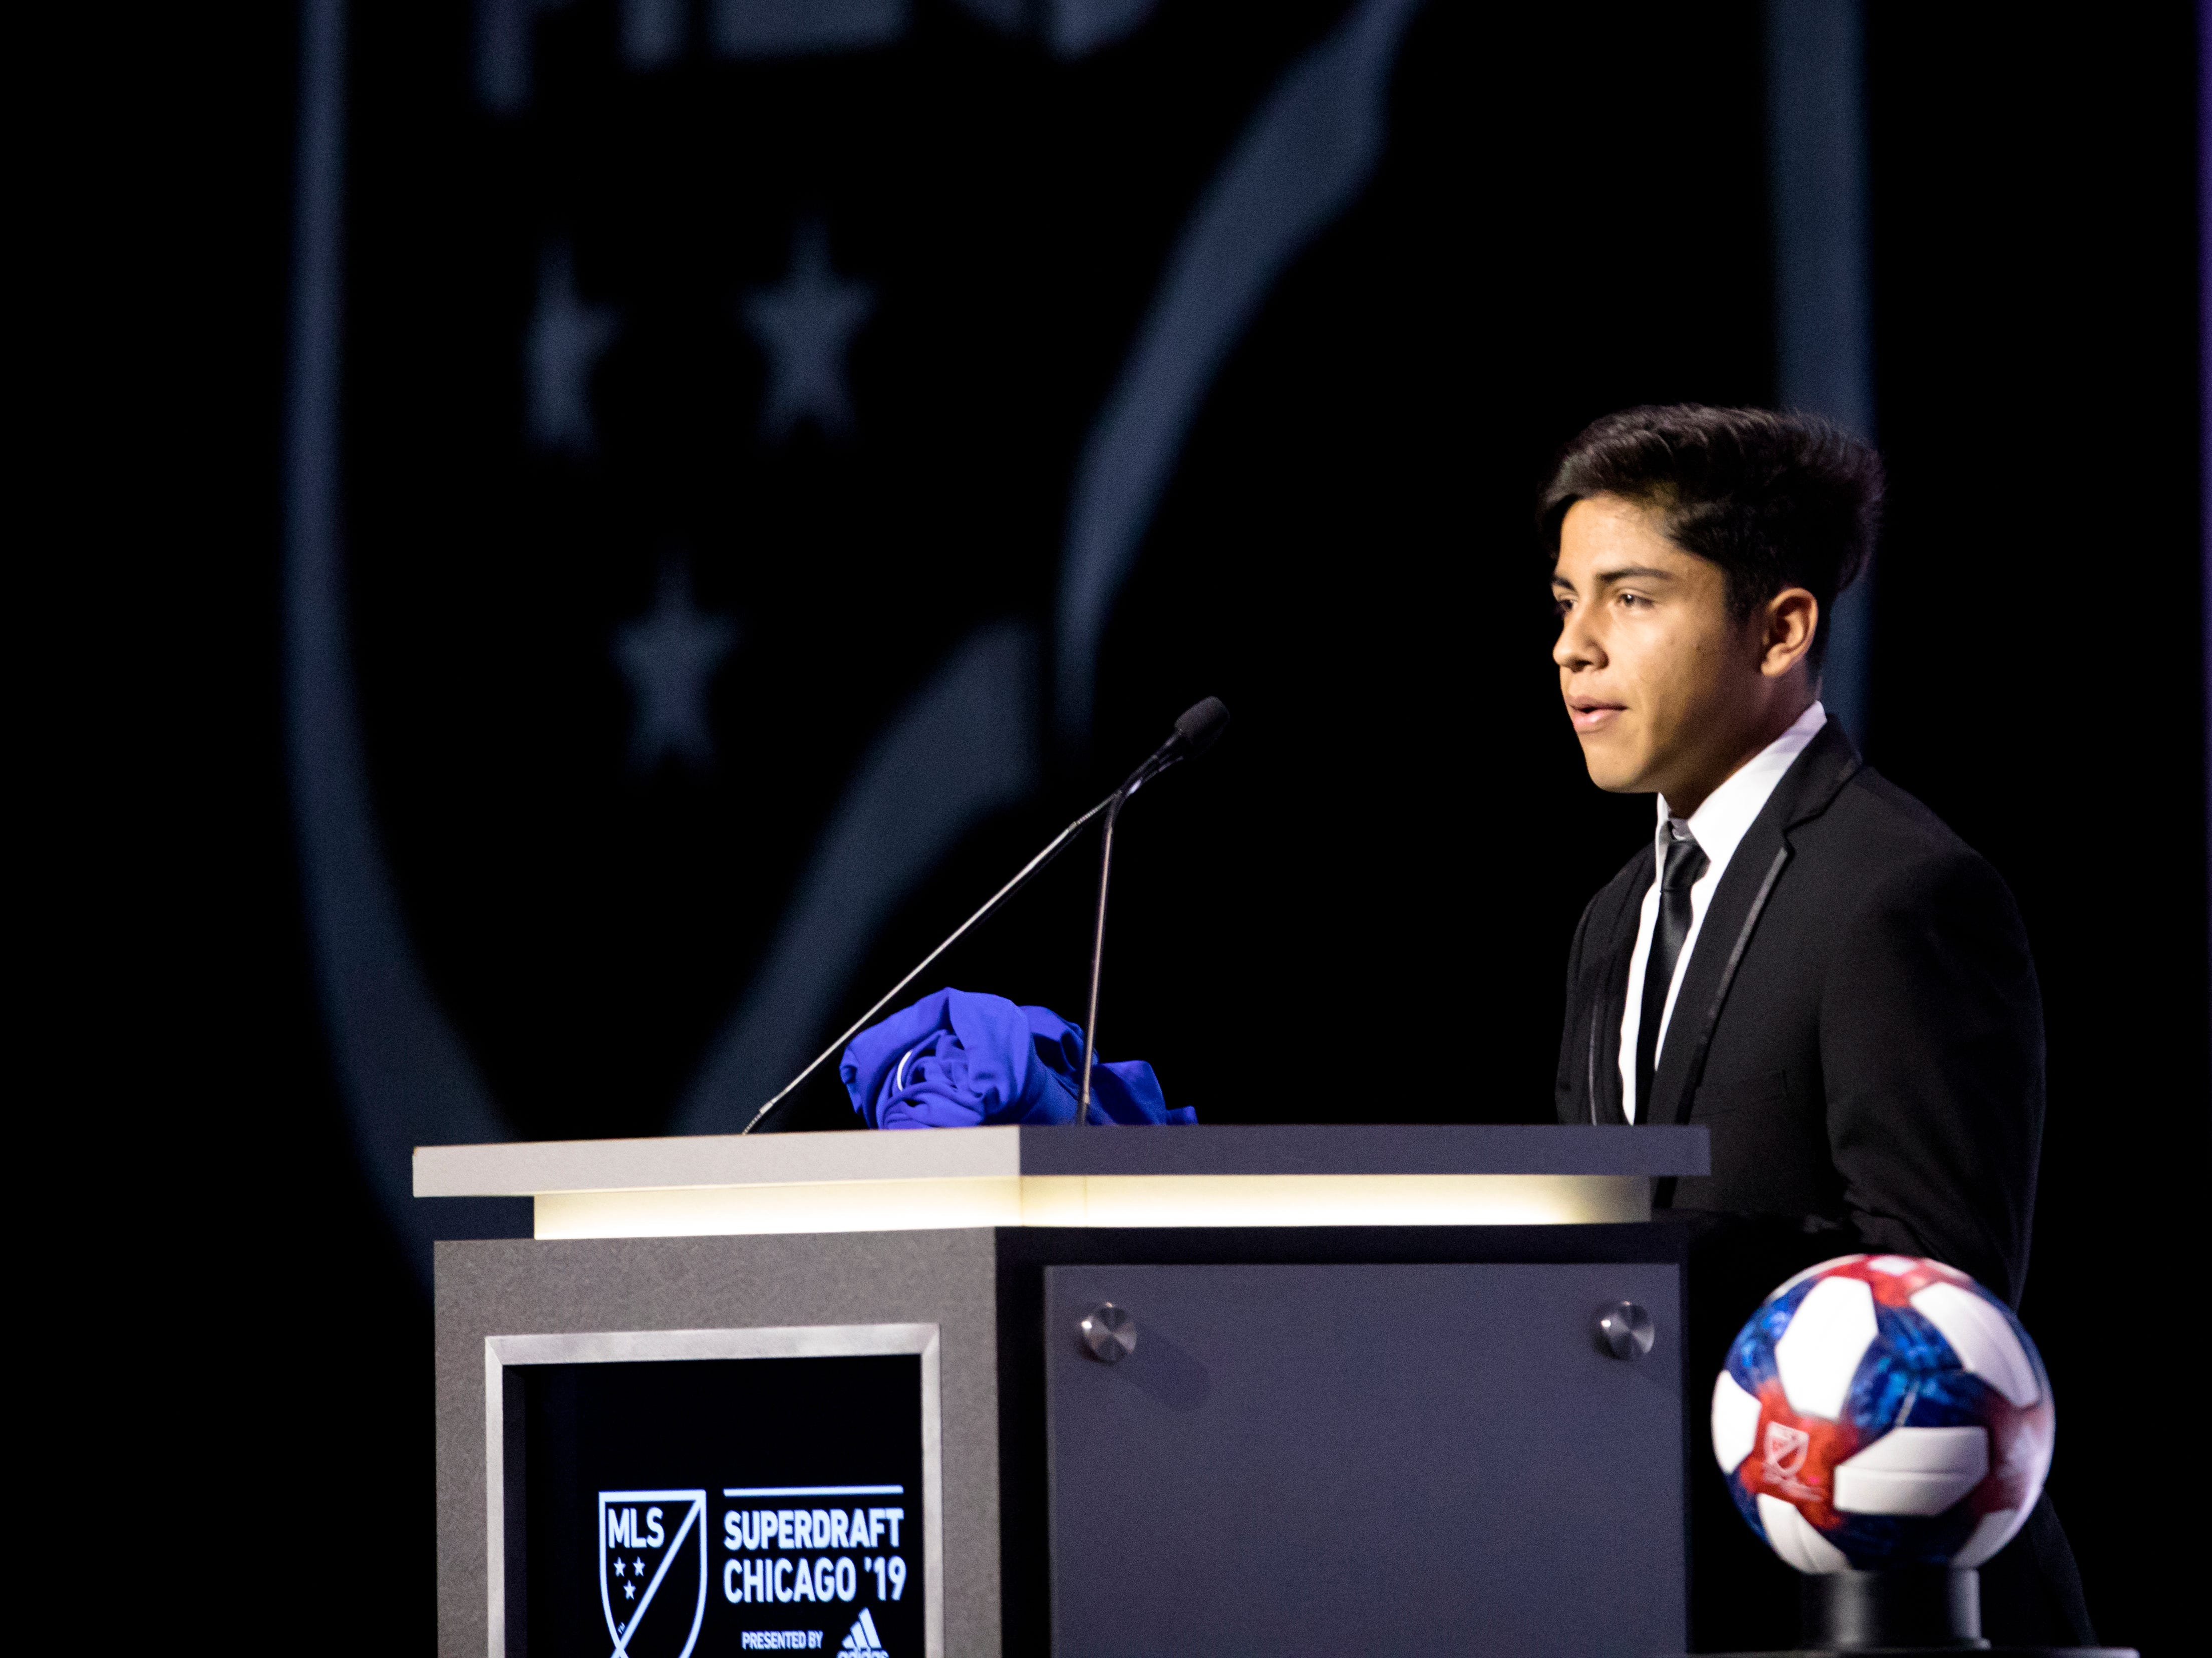 Frankie Amaya speaks after being selected by FC Cincinnati in the first pick of the first round of the MLS Superdraft on Friday, Jan. 11, 2019 in Chicago, Illinois.